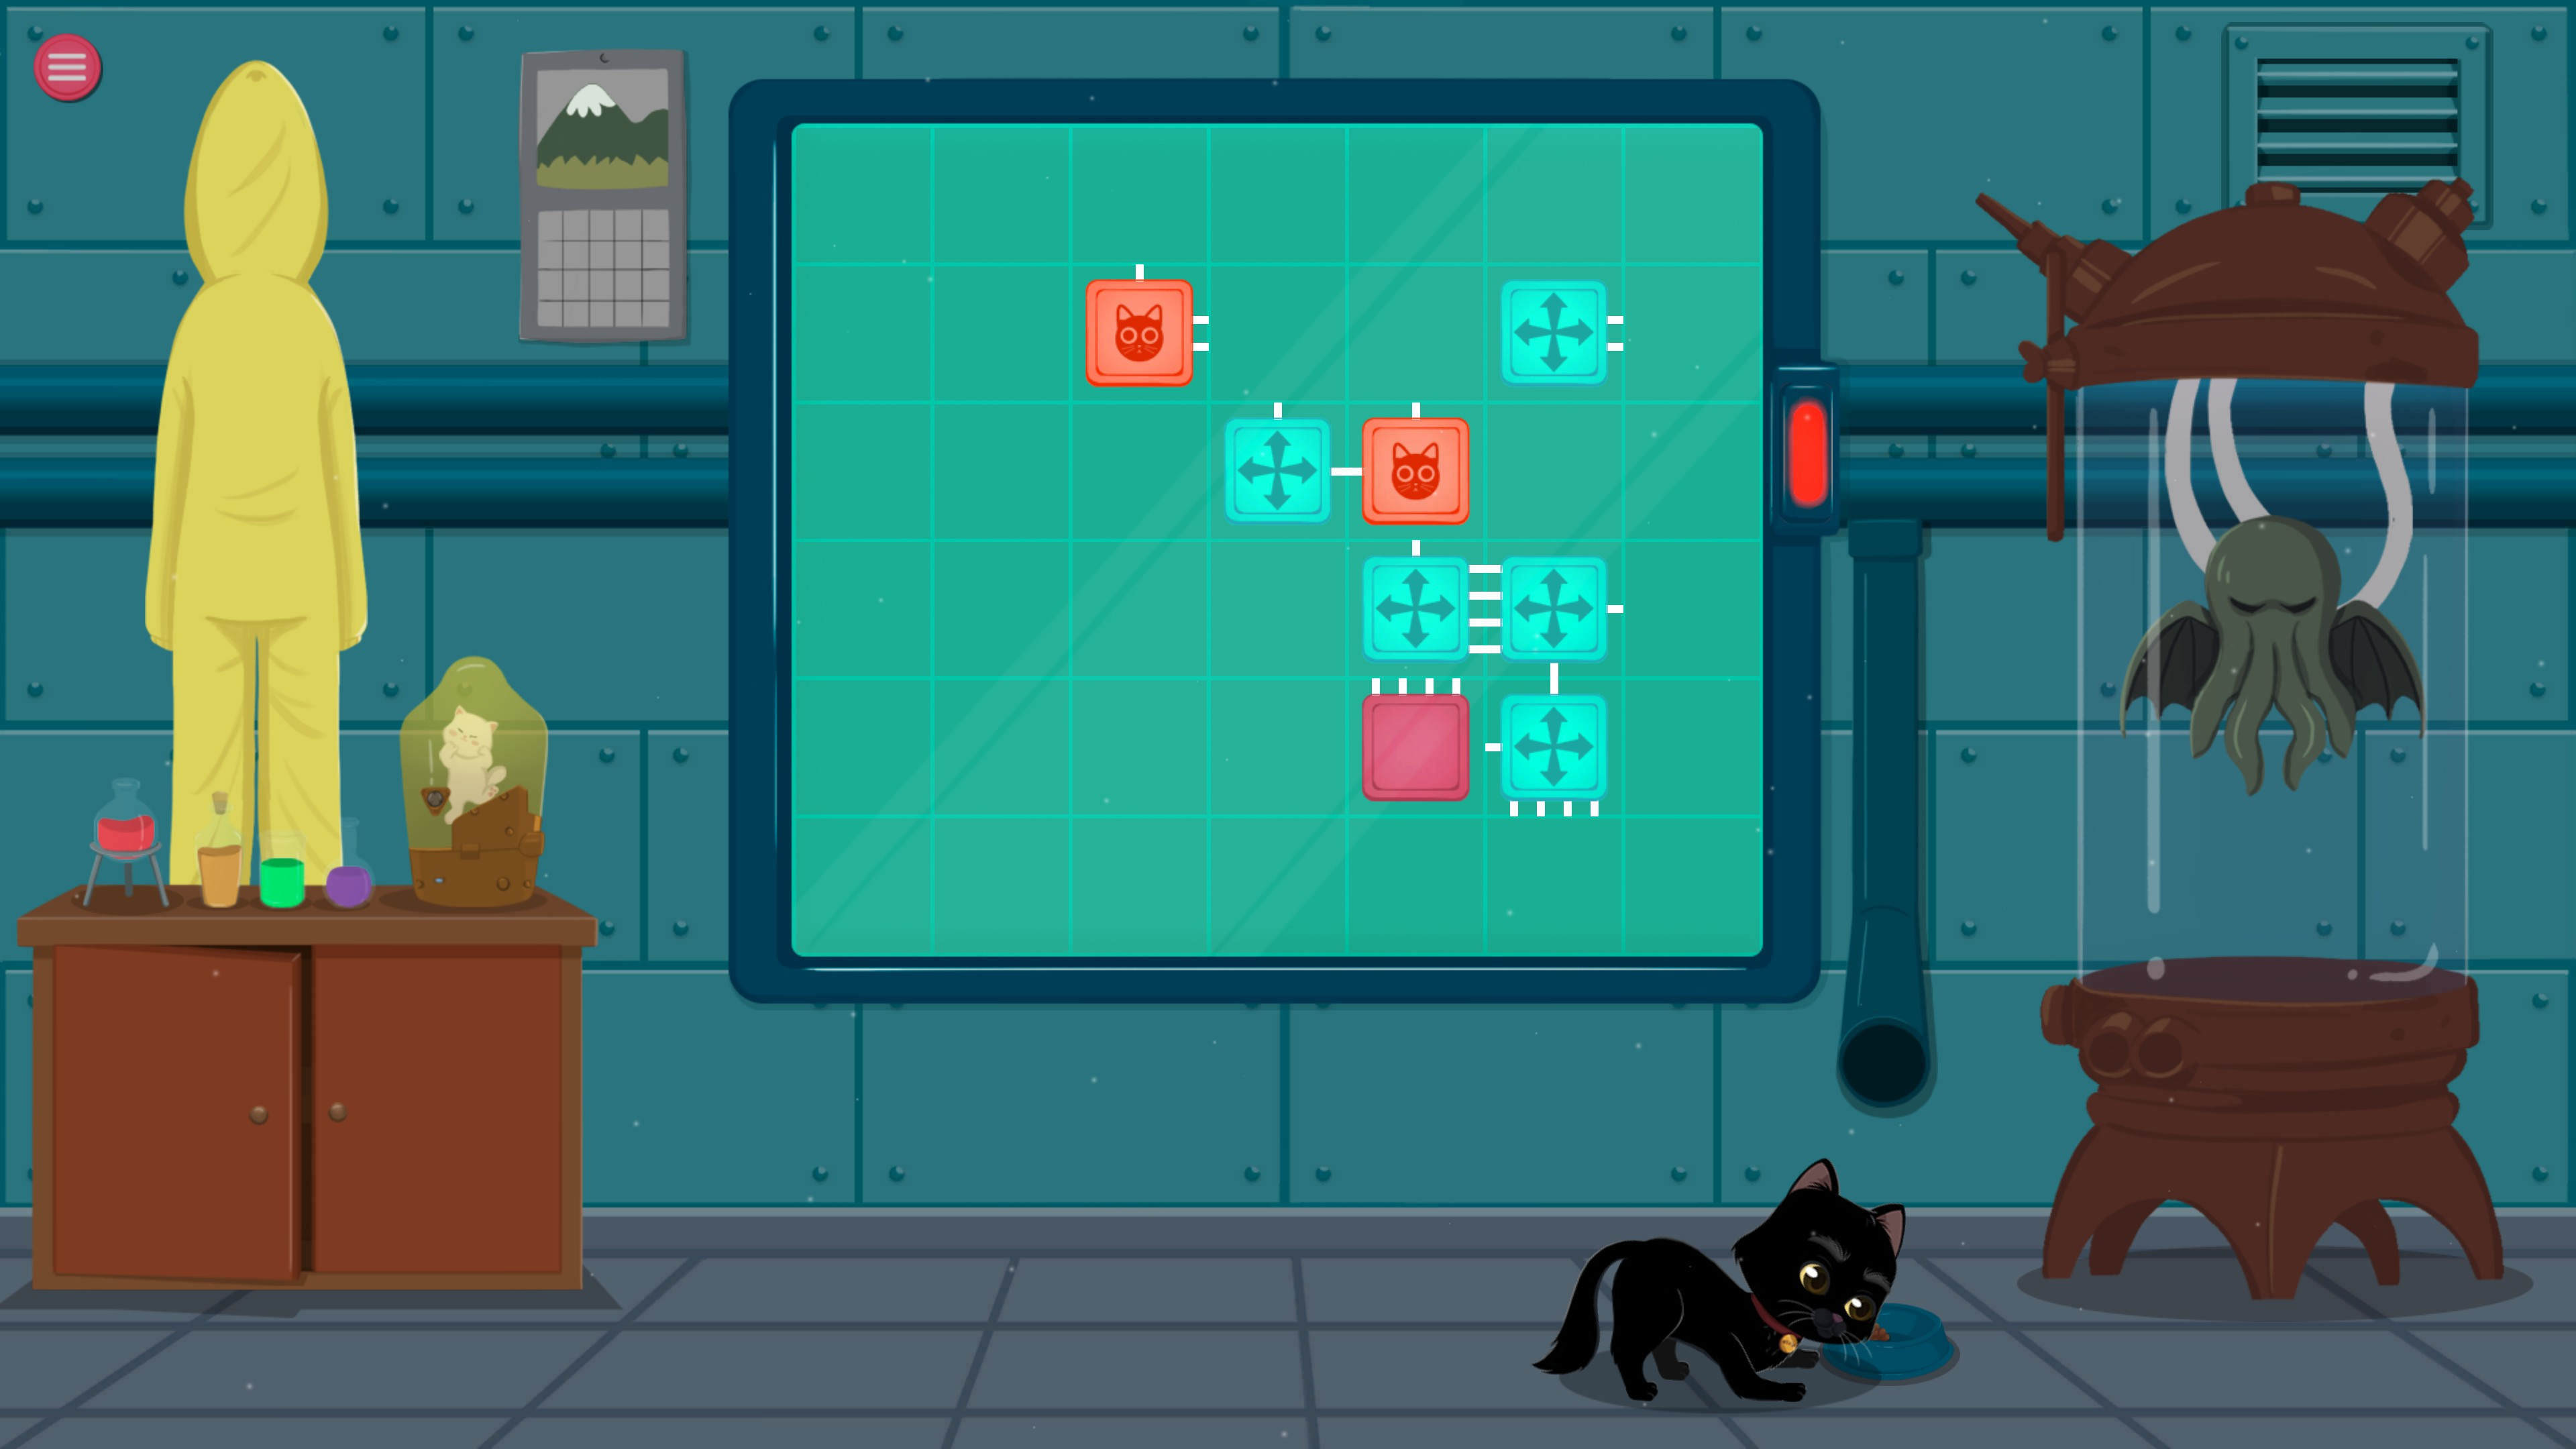 Meow Lab. Level with 7 pieces and 2 piece types. The pieces are close together, but not correctly connected.